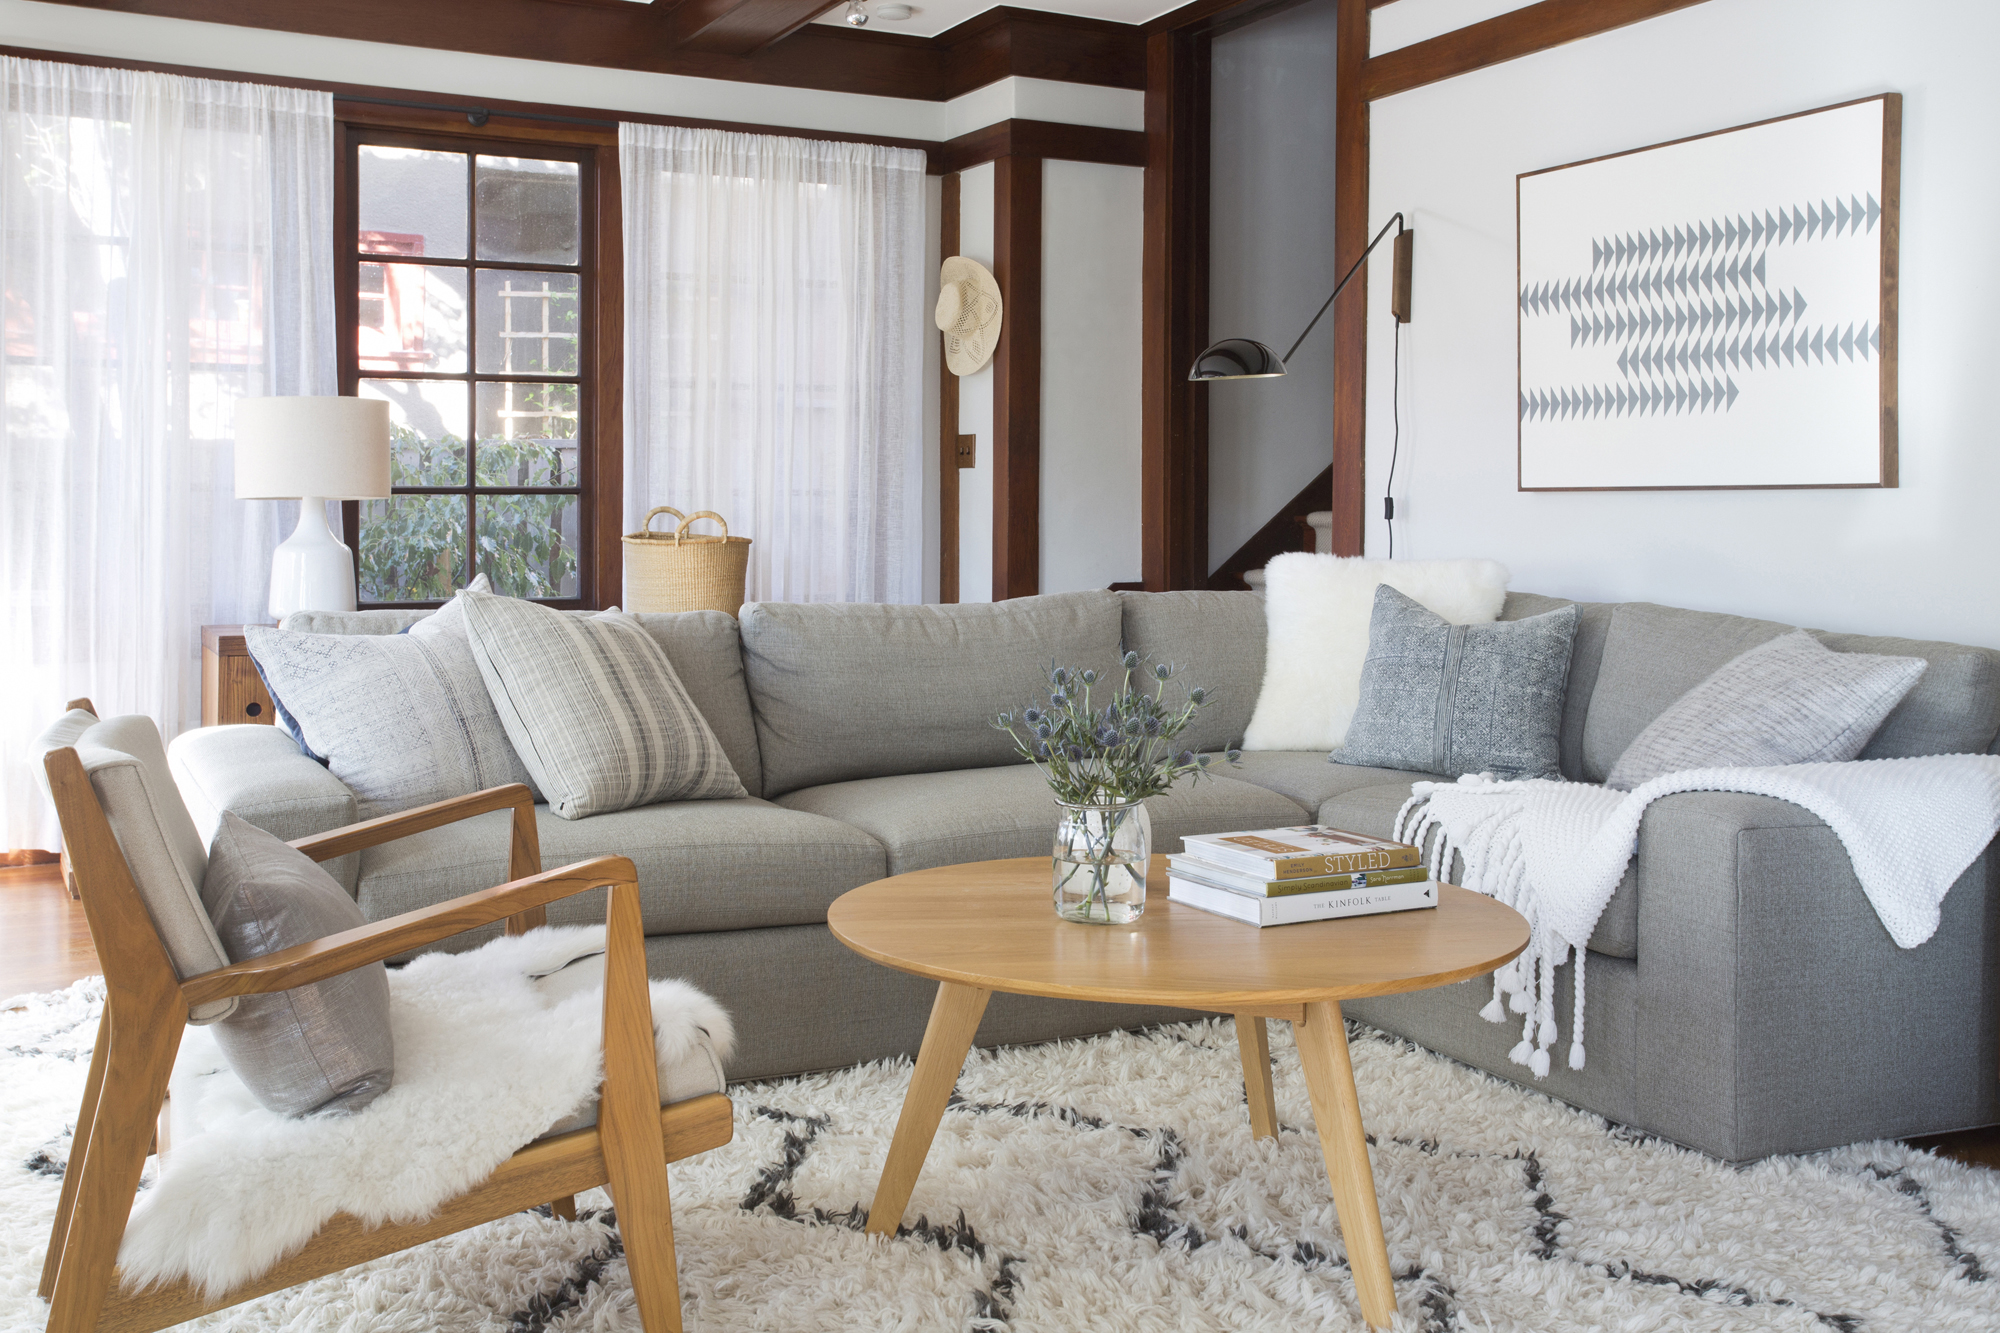 Tidy living room with couch and rug